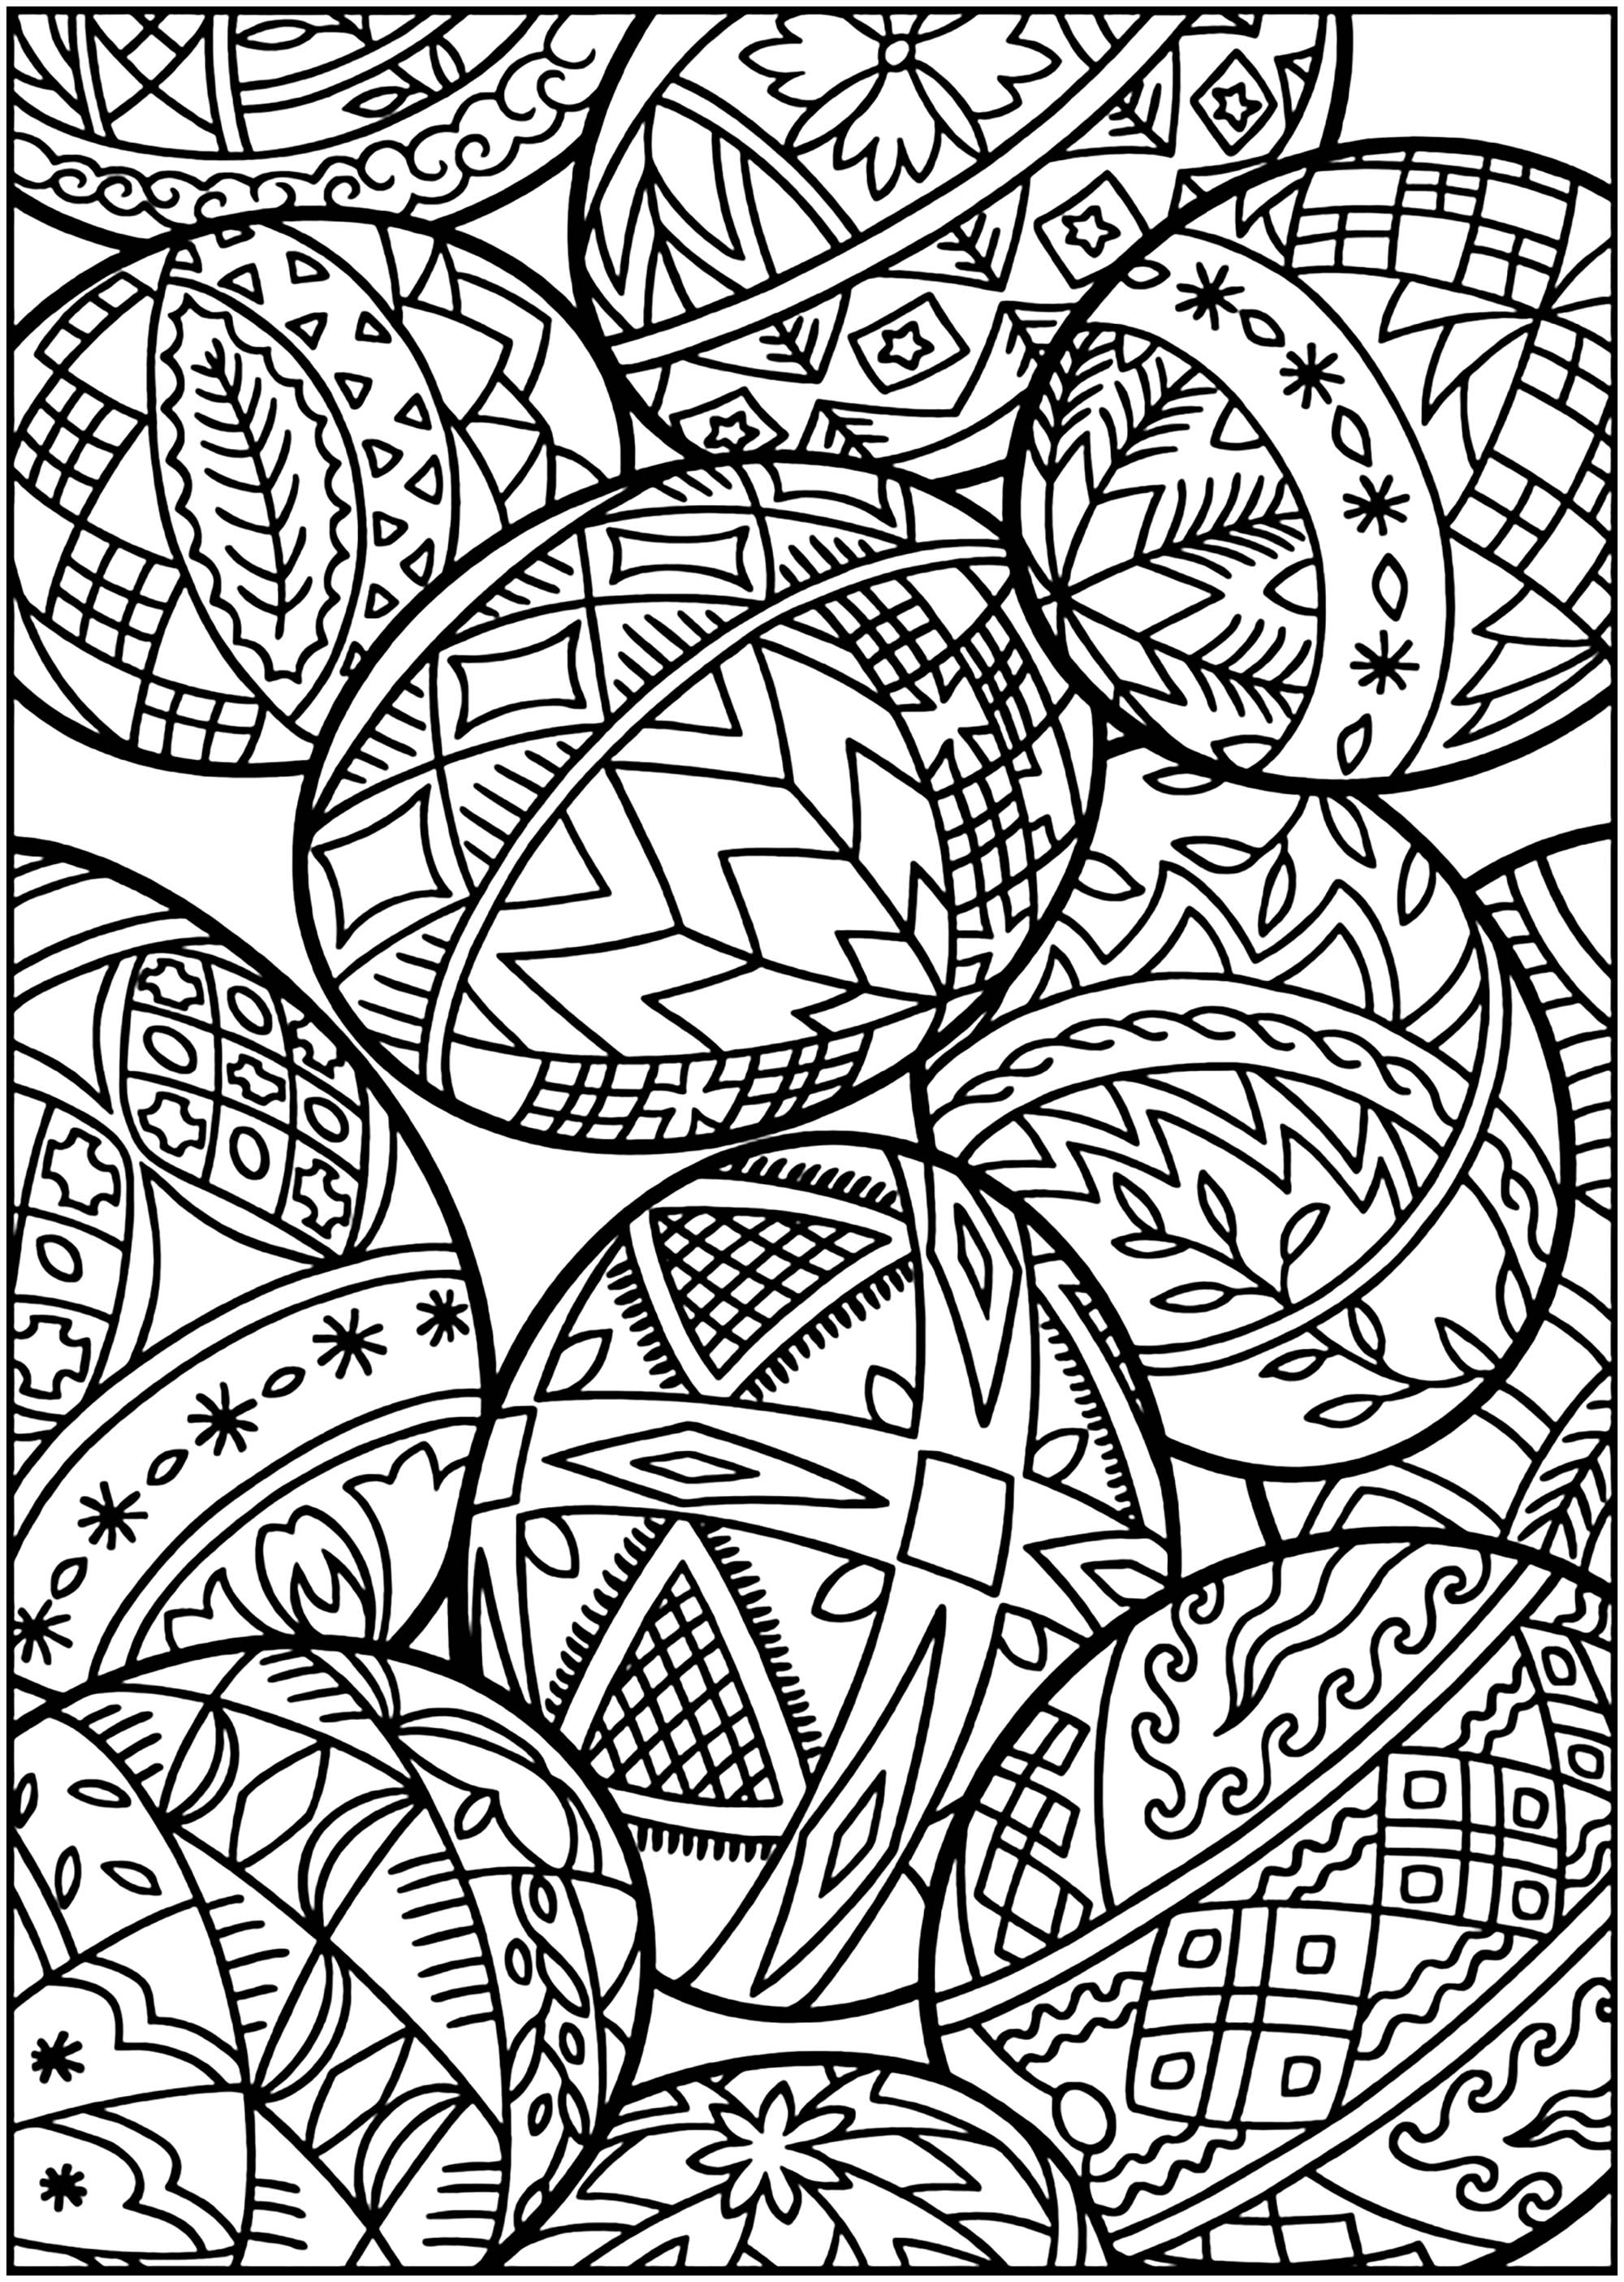 Easter eggs to print and color with various patterns